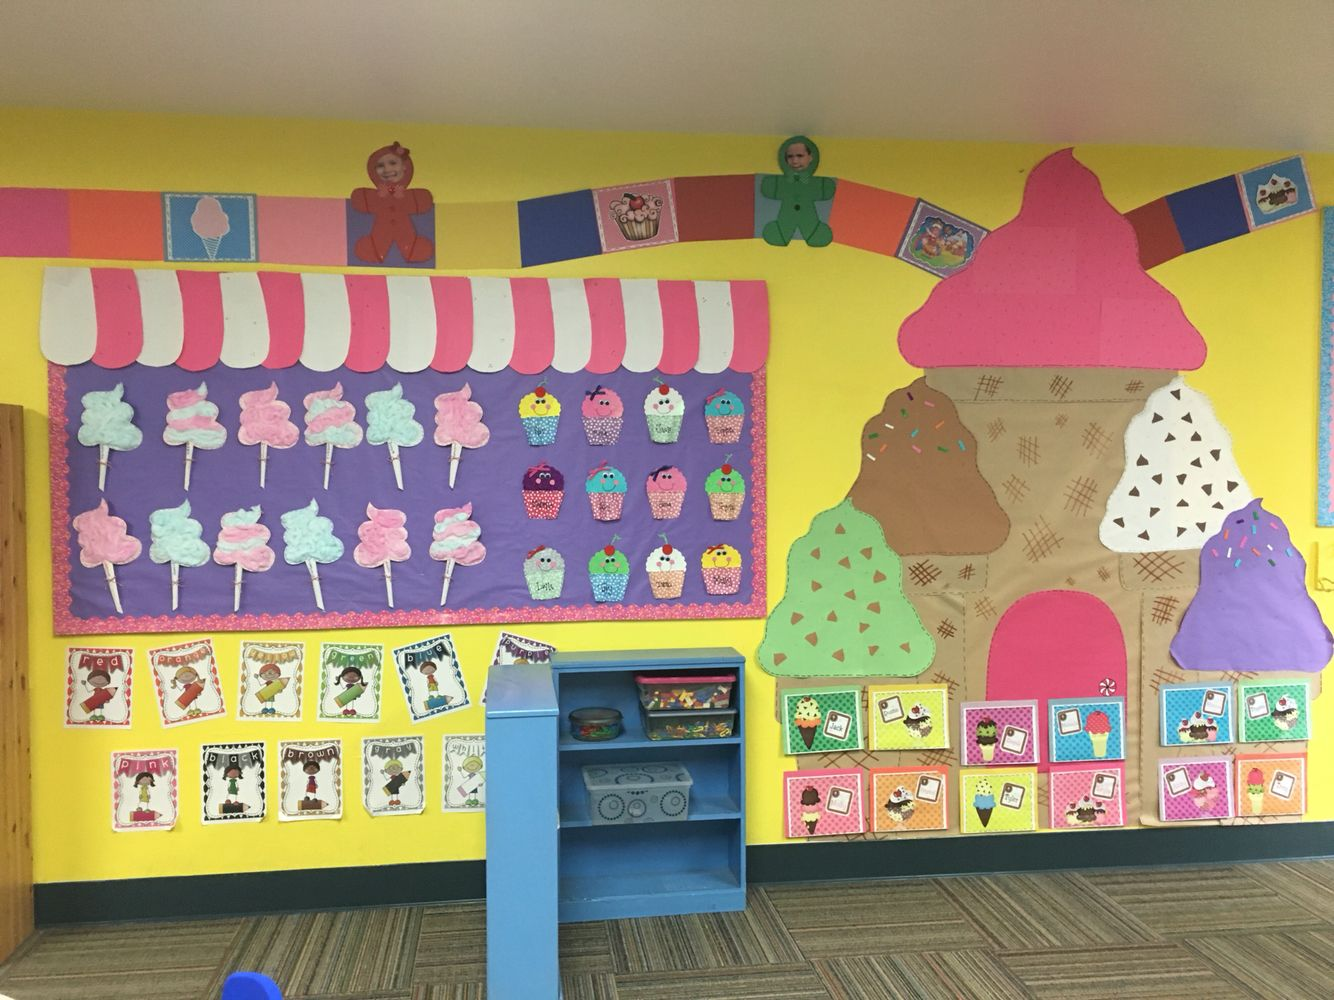 Candyland Theme Bulletin Board With Cotton Candy And Cupcakes Above The Bulletin Board Is A Game B Candy Theme Classroom Sunday School Decorations Candyland